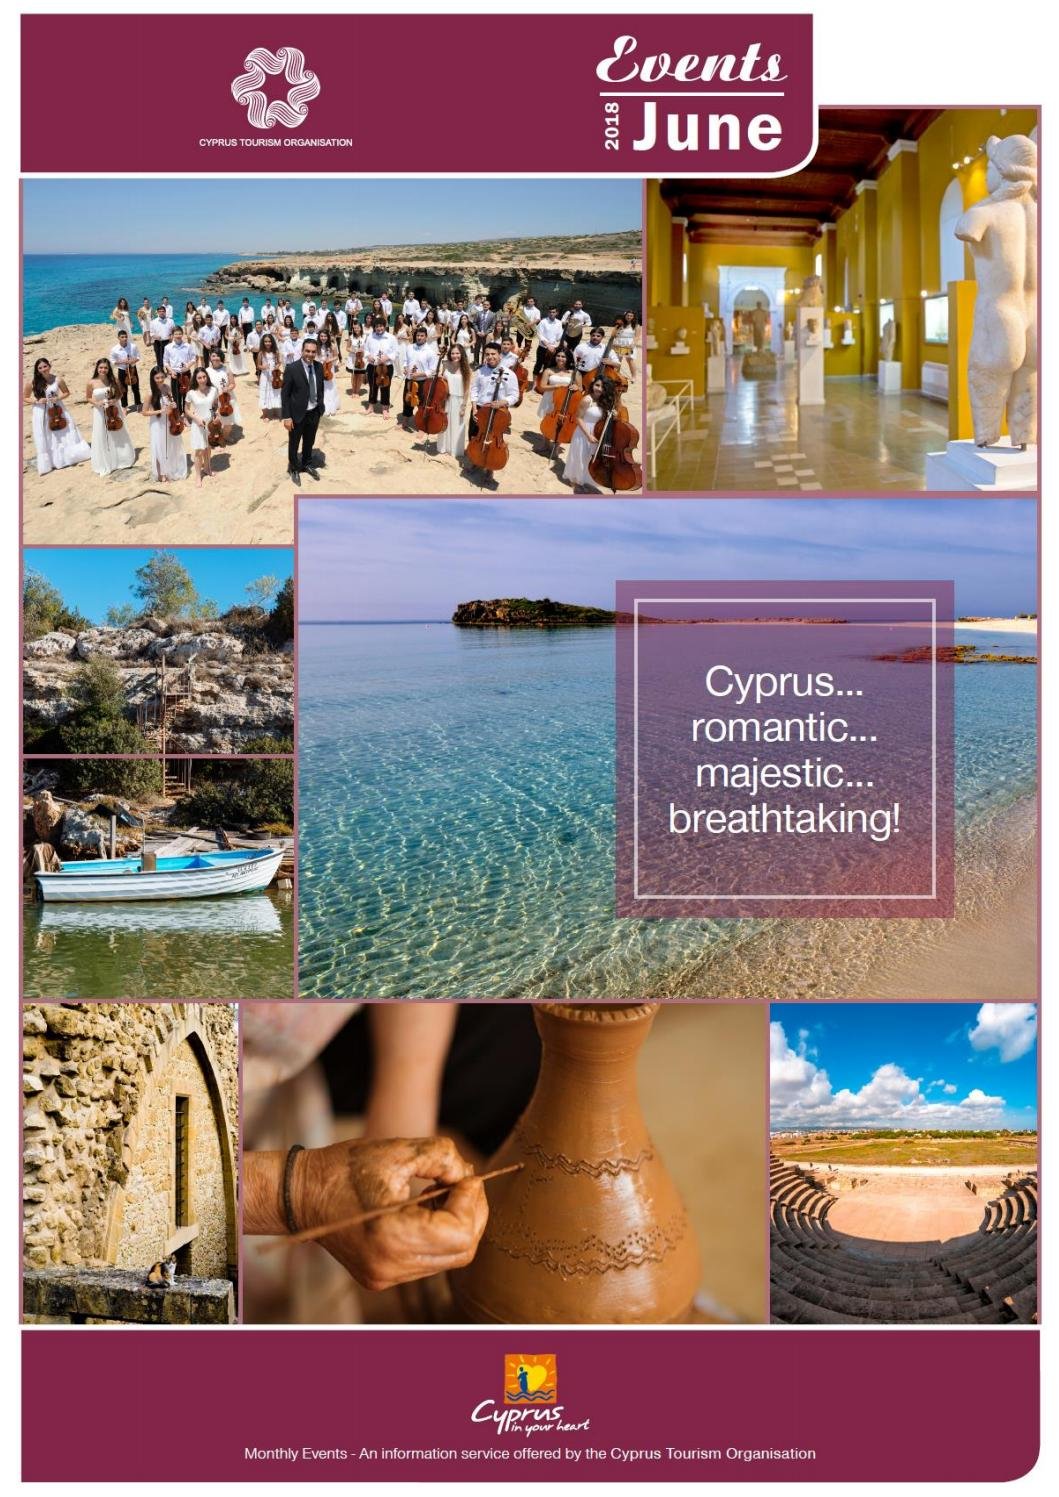 Cyprus events june 2018 by Deputy Ministry of Tourism - issuu